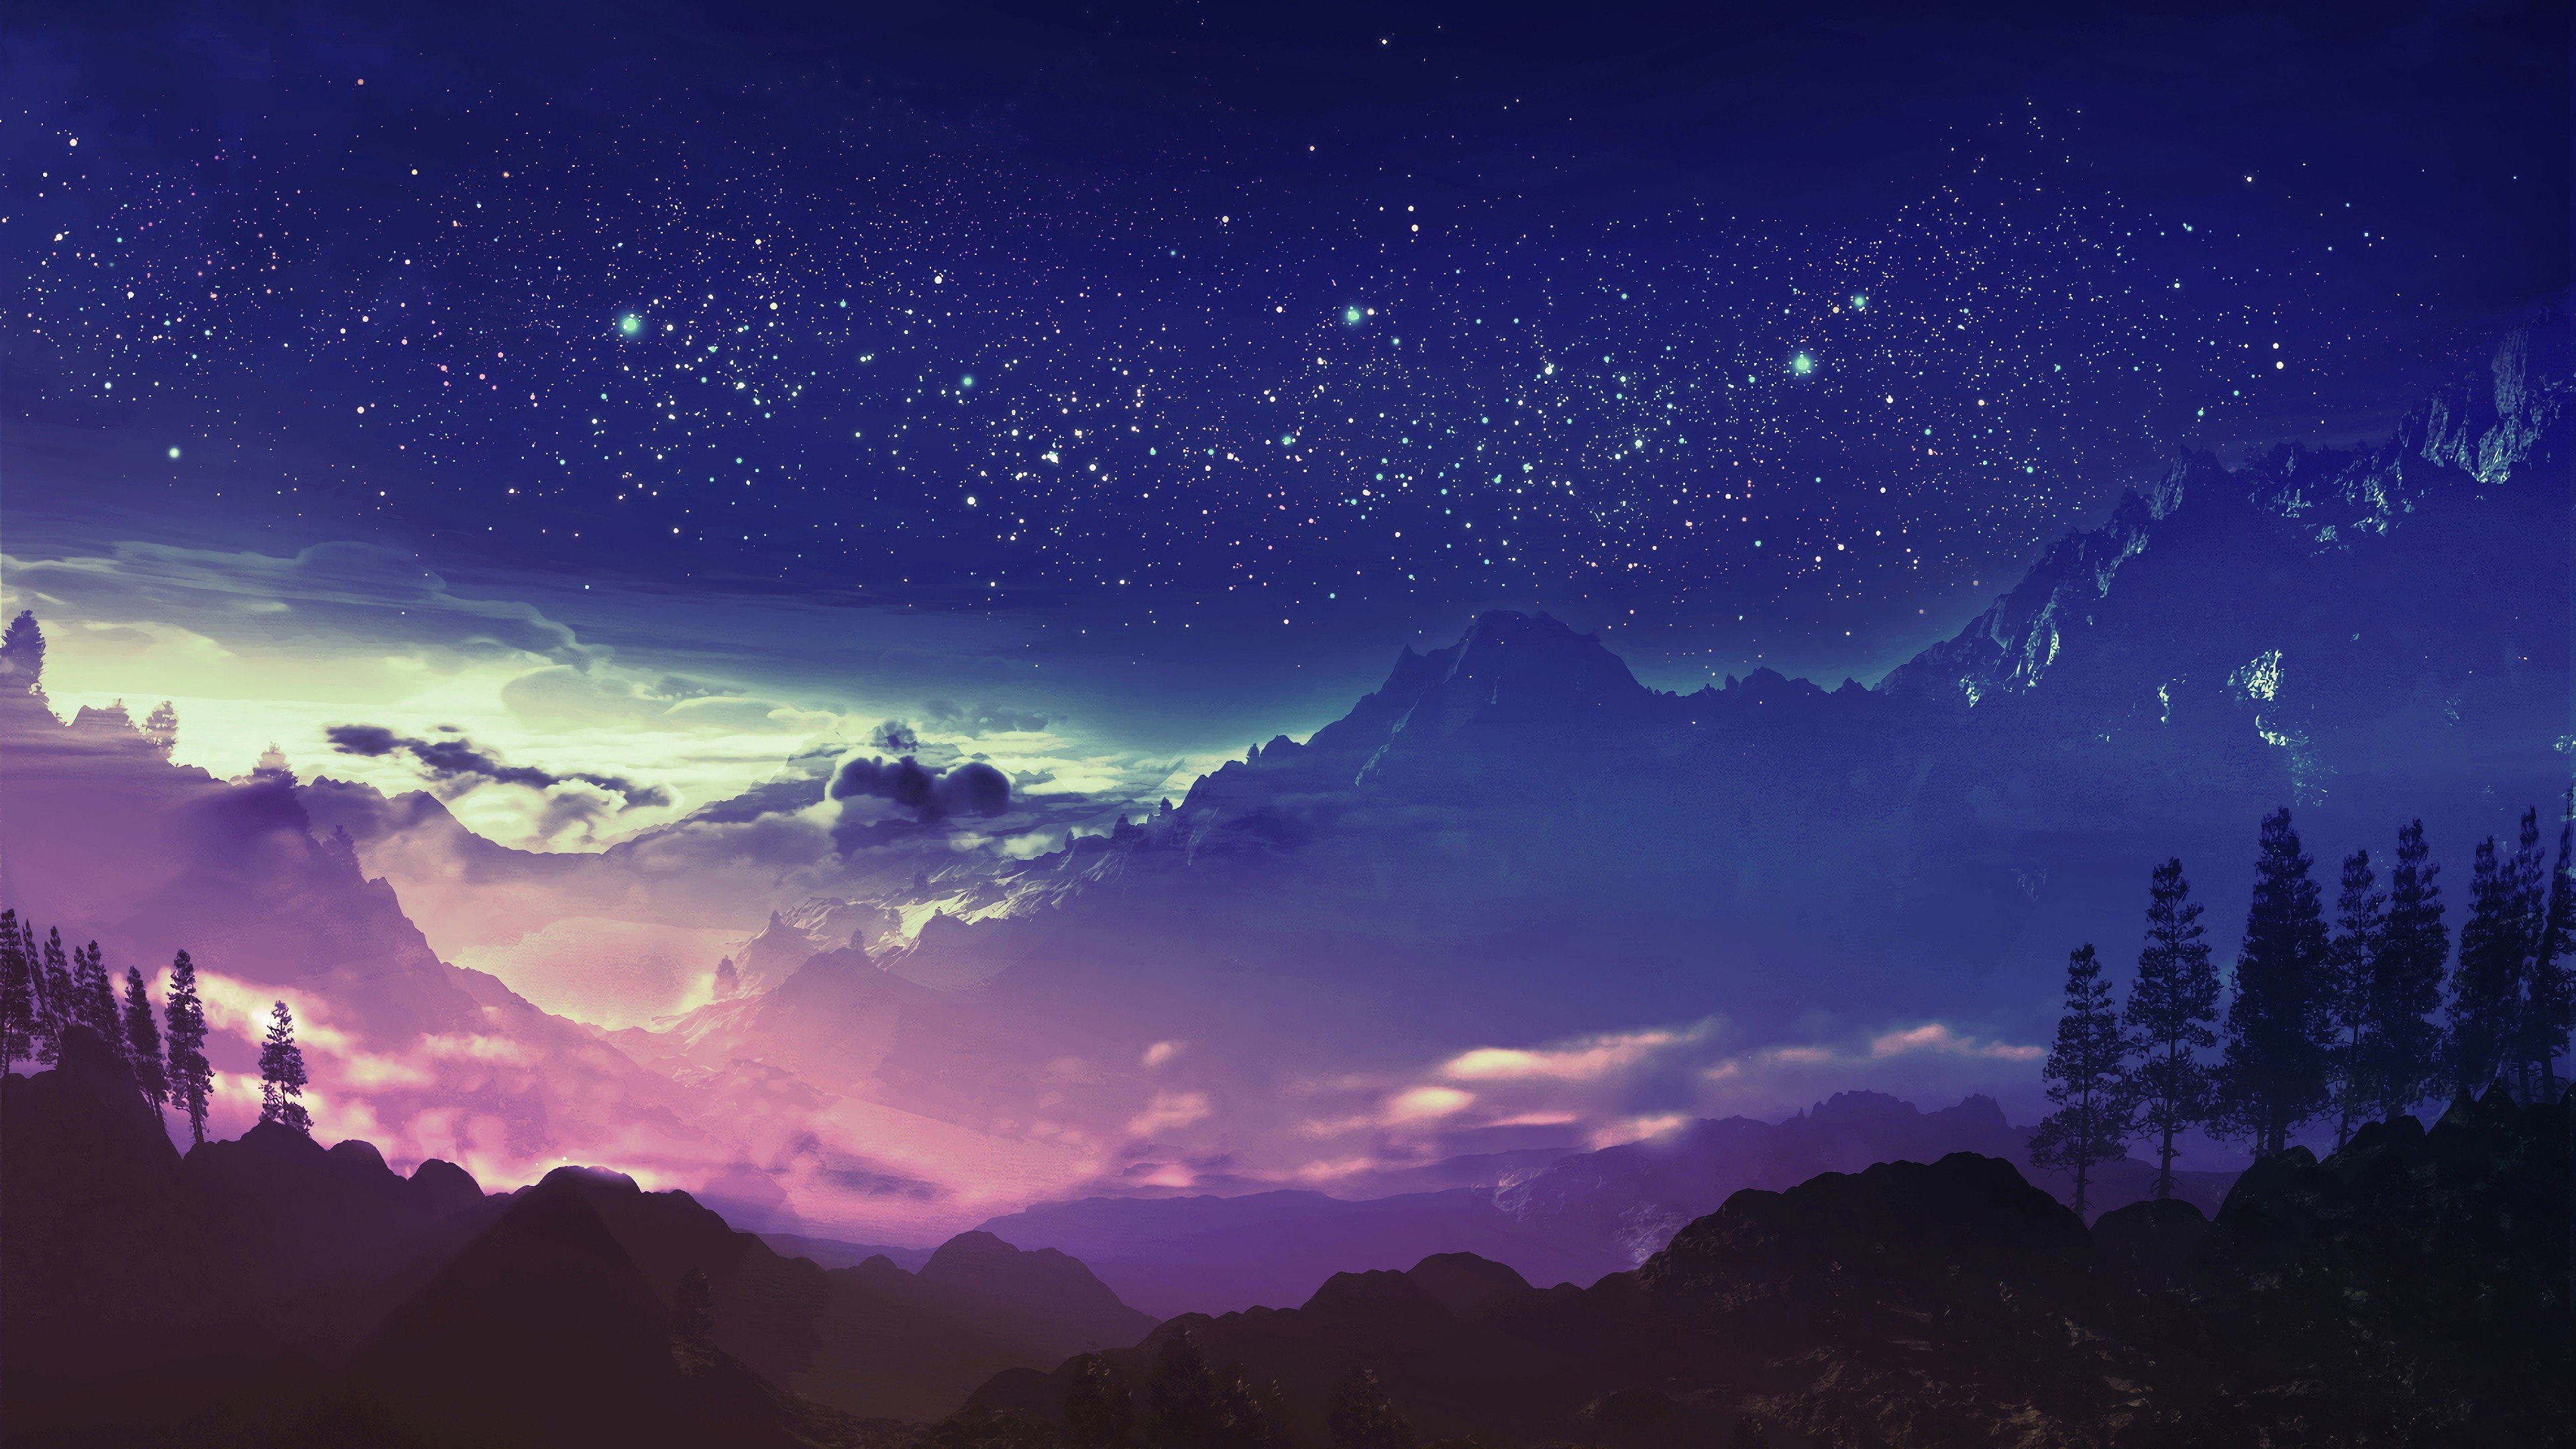 Anime Landscapes 4k Wallpapers - Wallpaper Cave